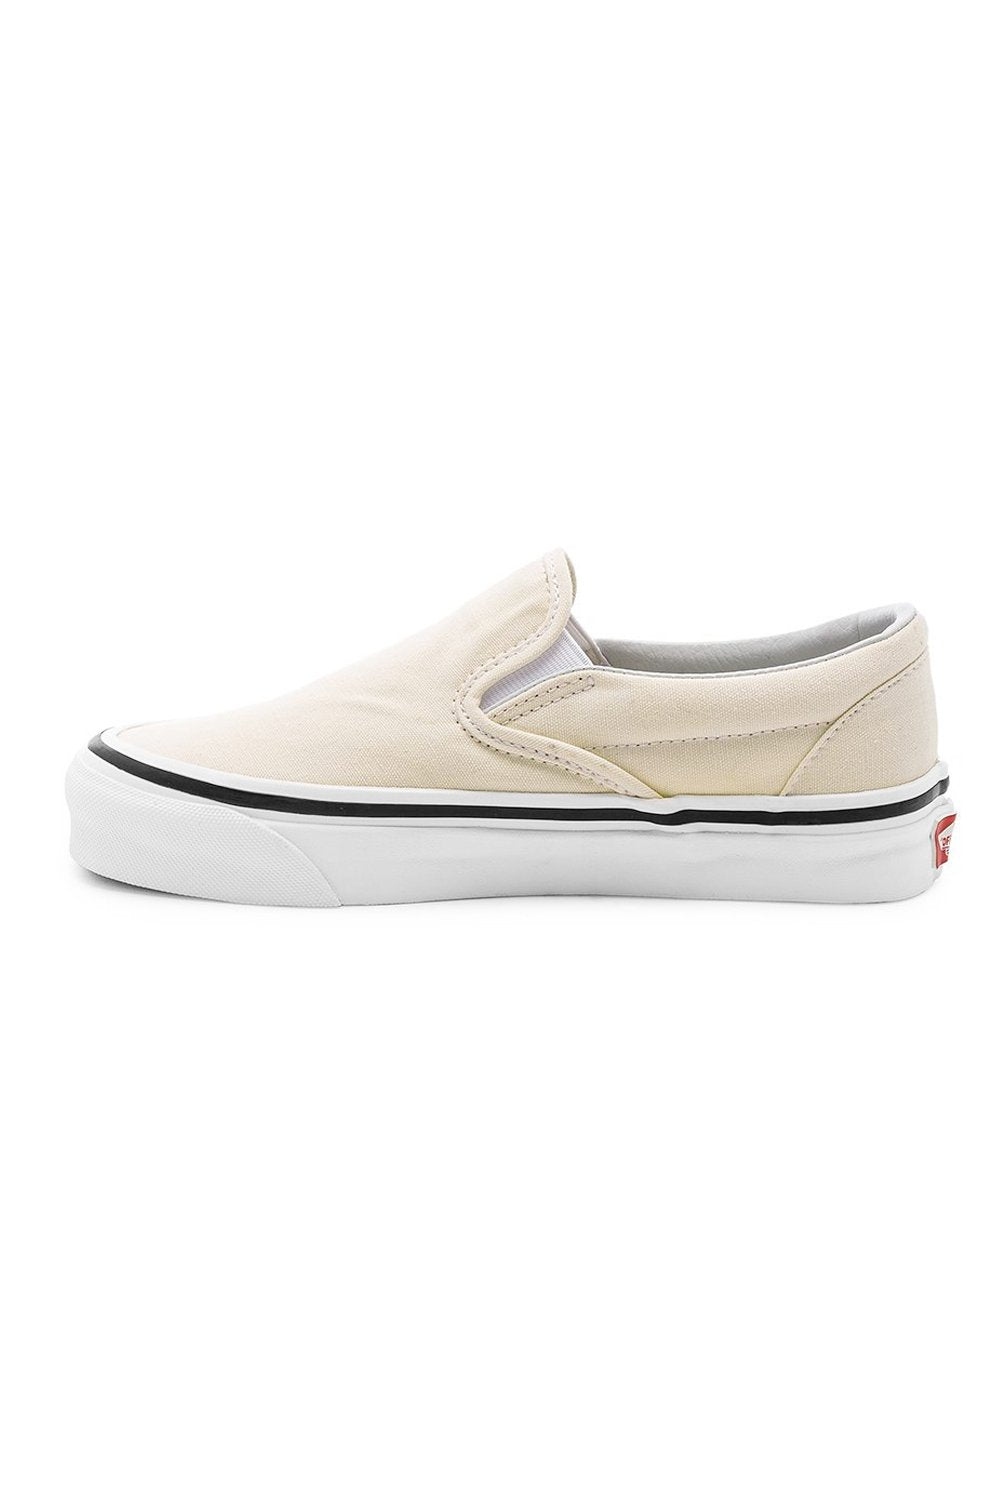 Vans Classic Slip On (CSO) Birch / True White Shoe